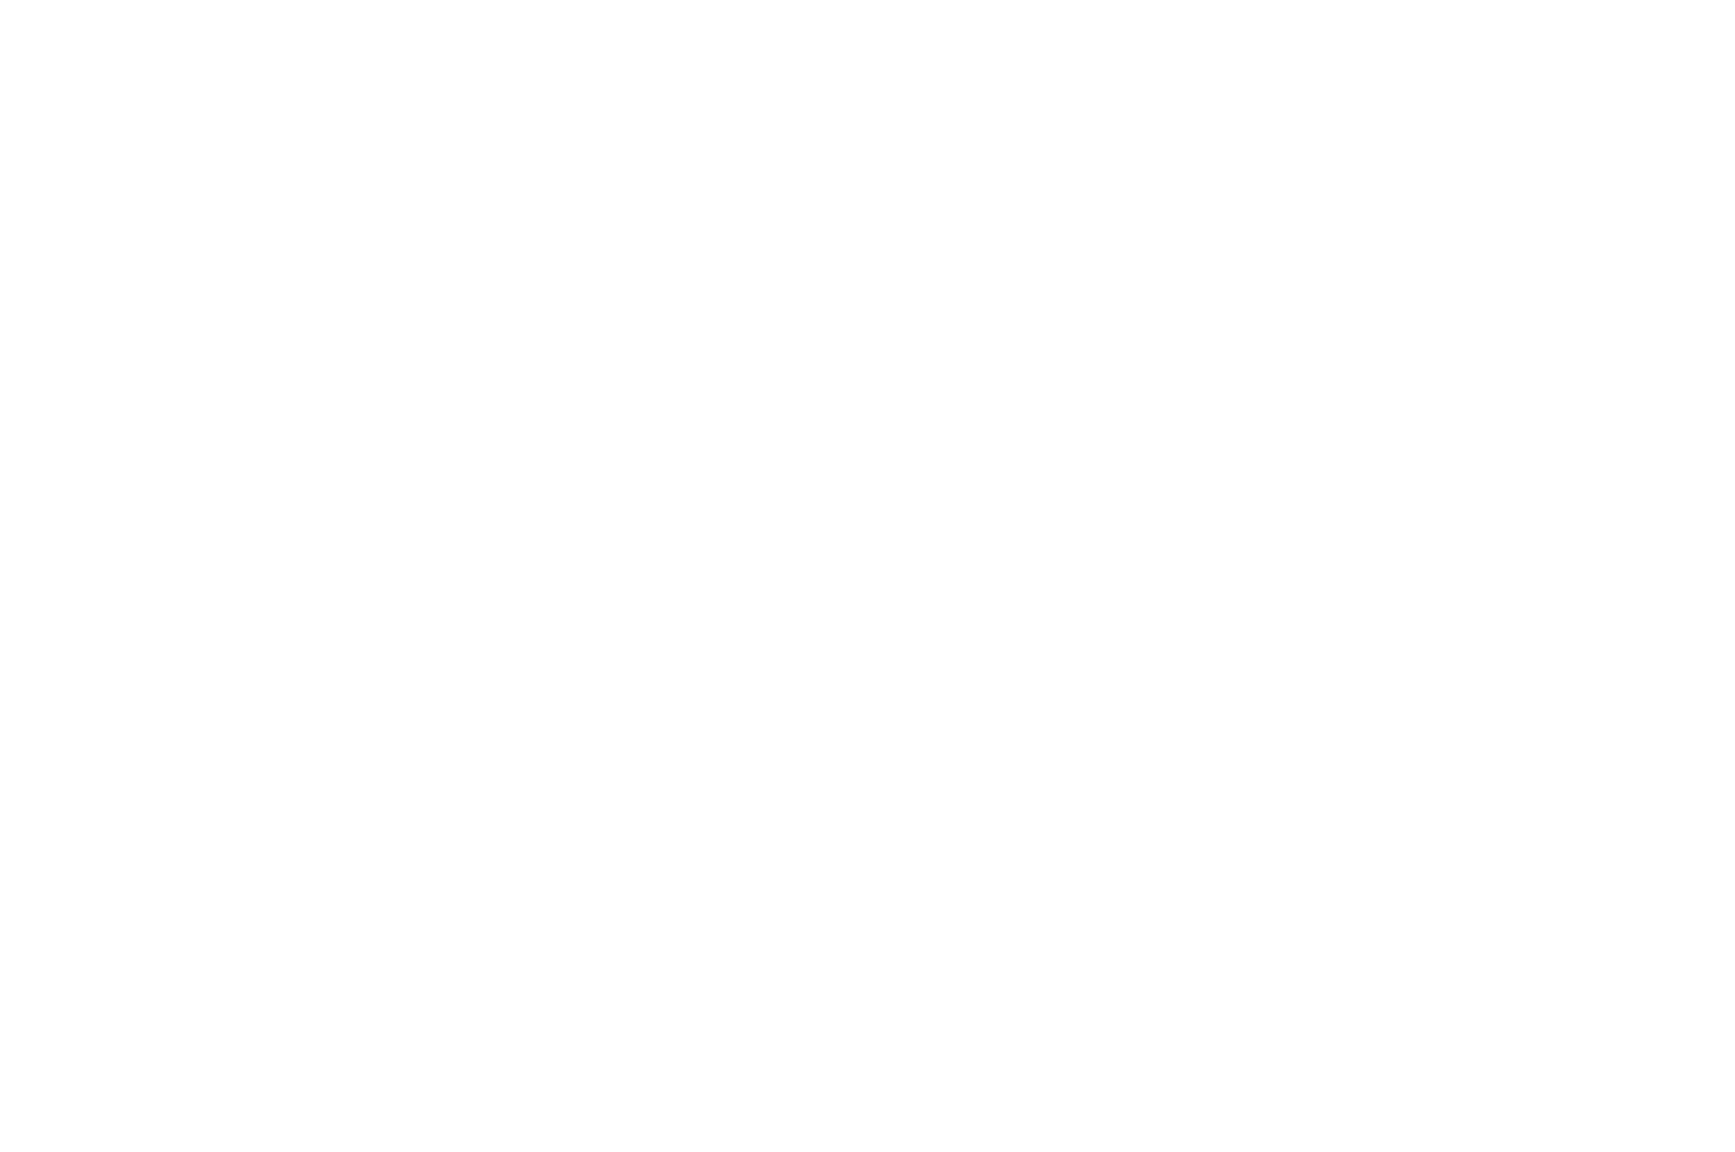 SEMI-FINALIST - International Family Film Festival Screenplay Competition